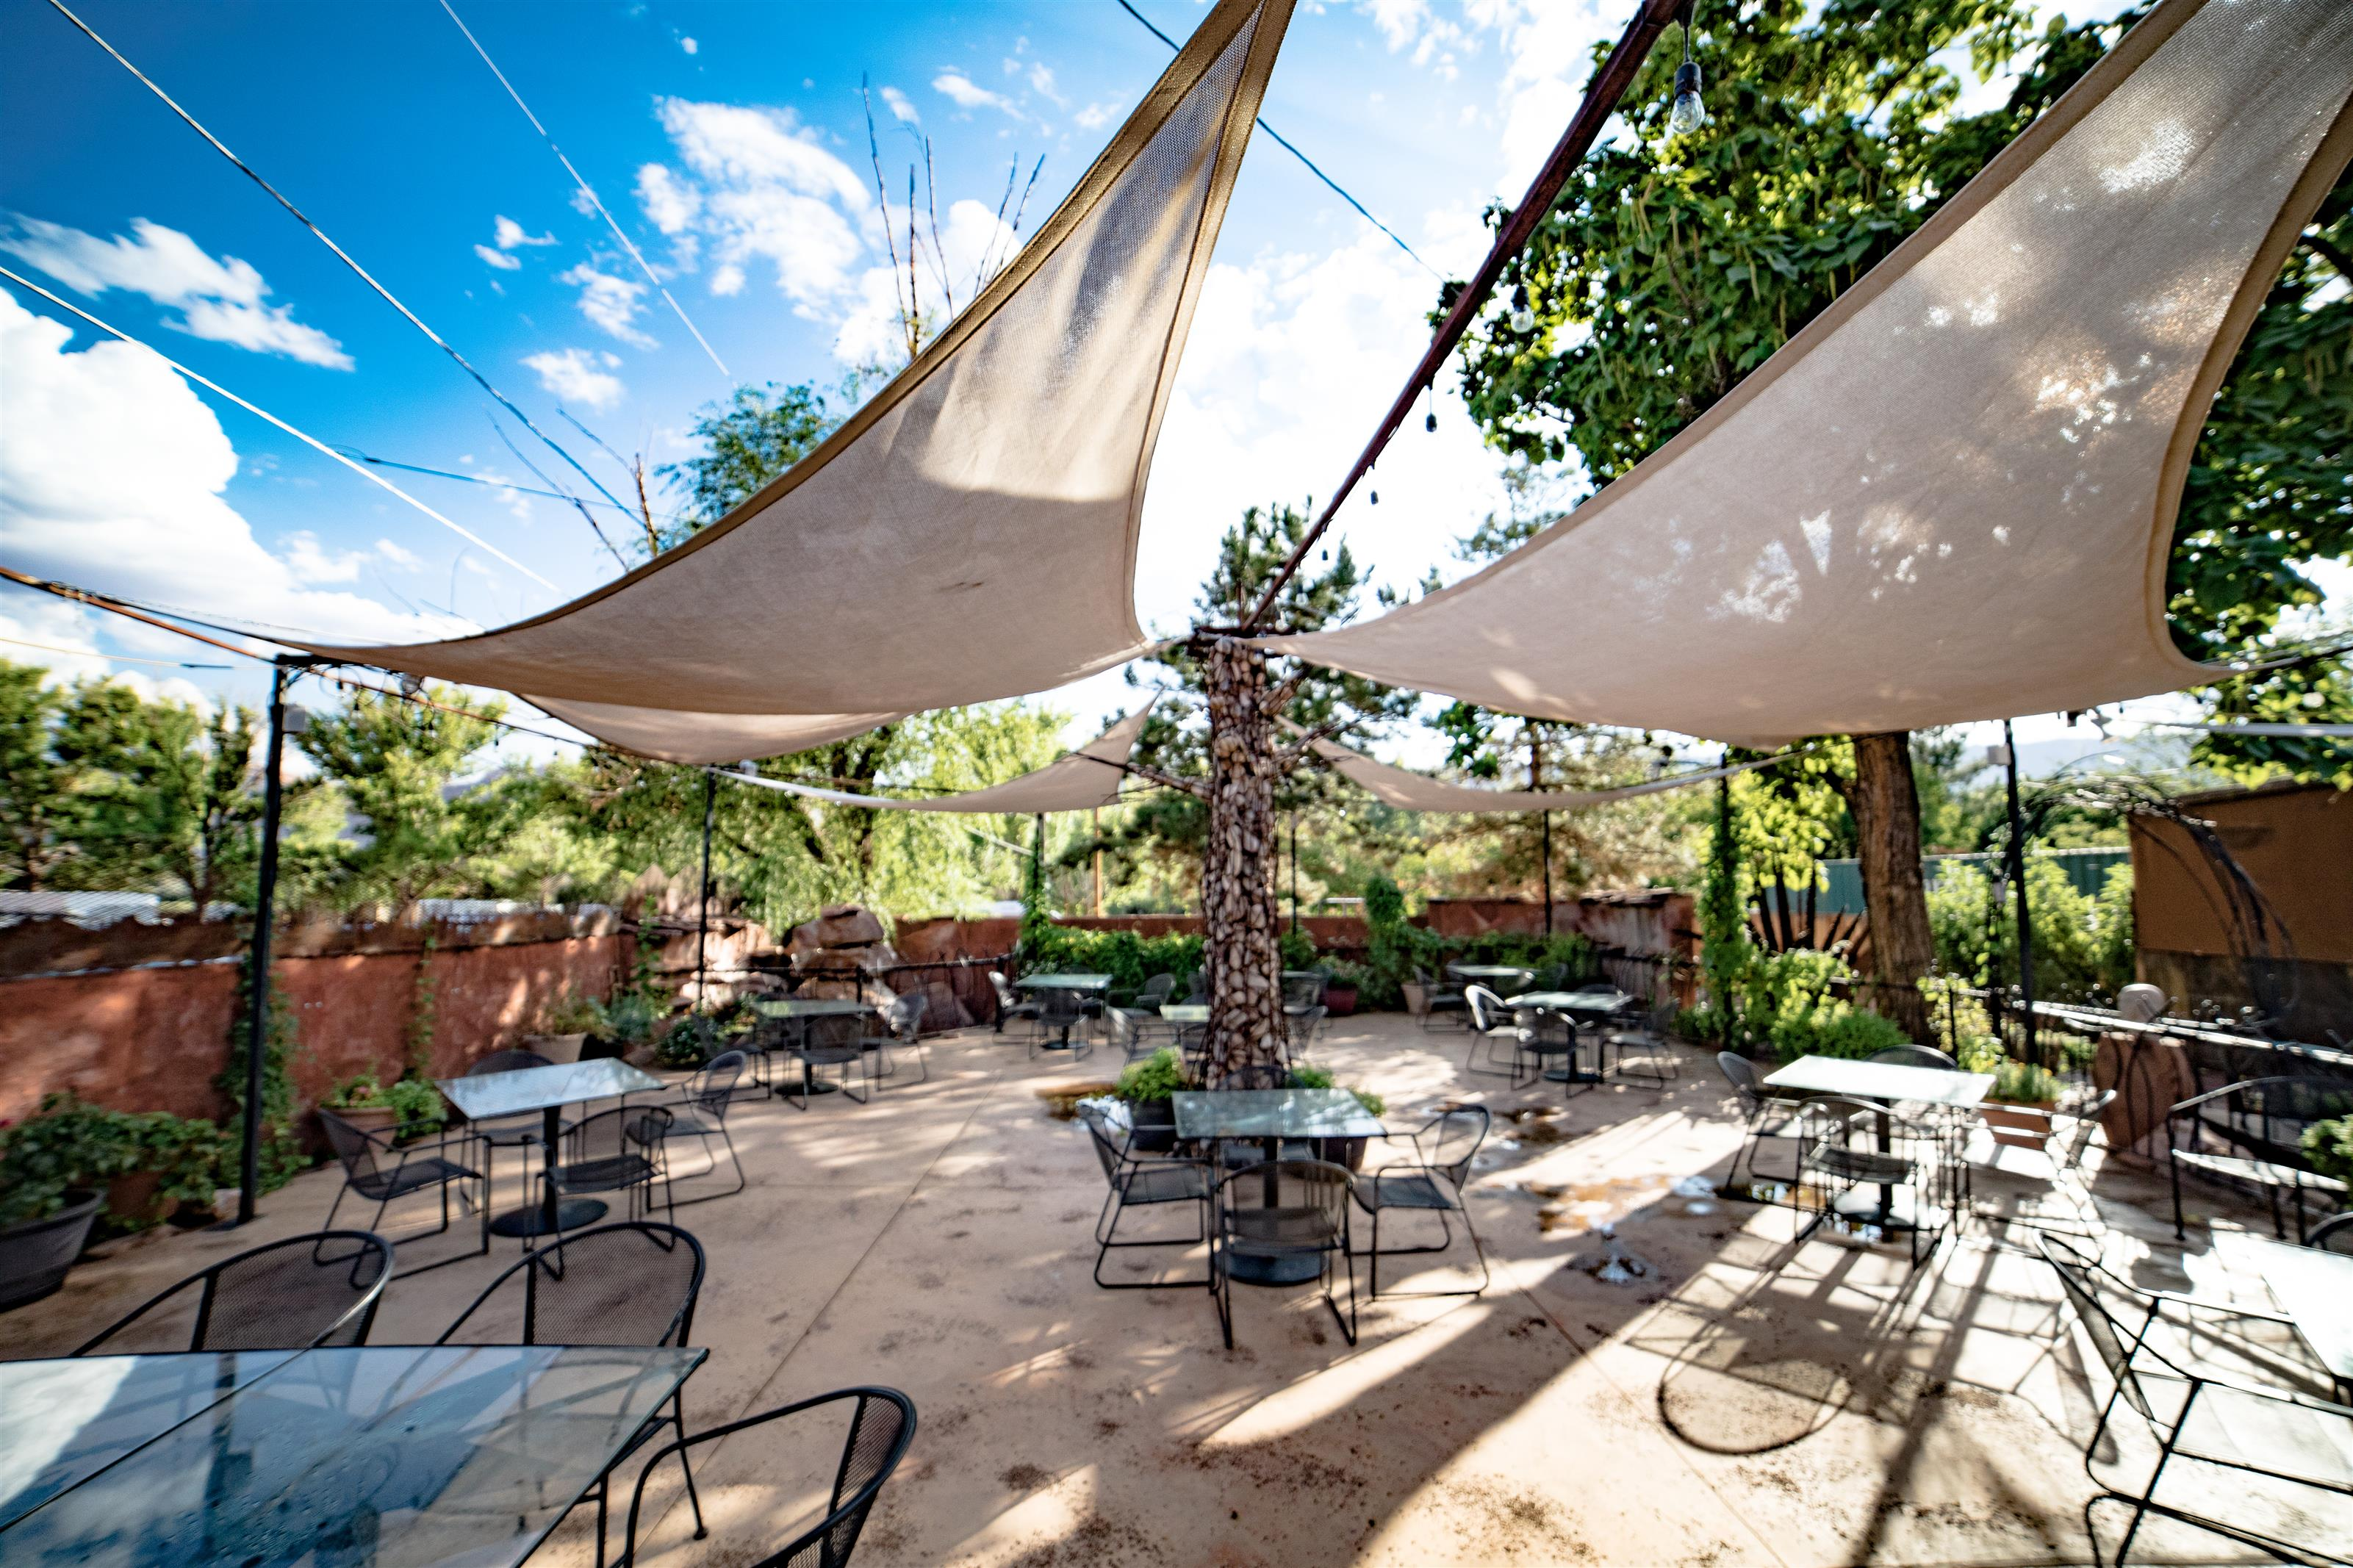 Patio area with dining tables